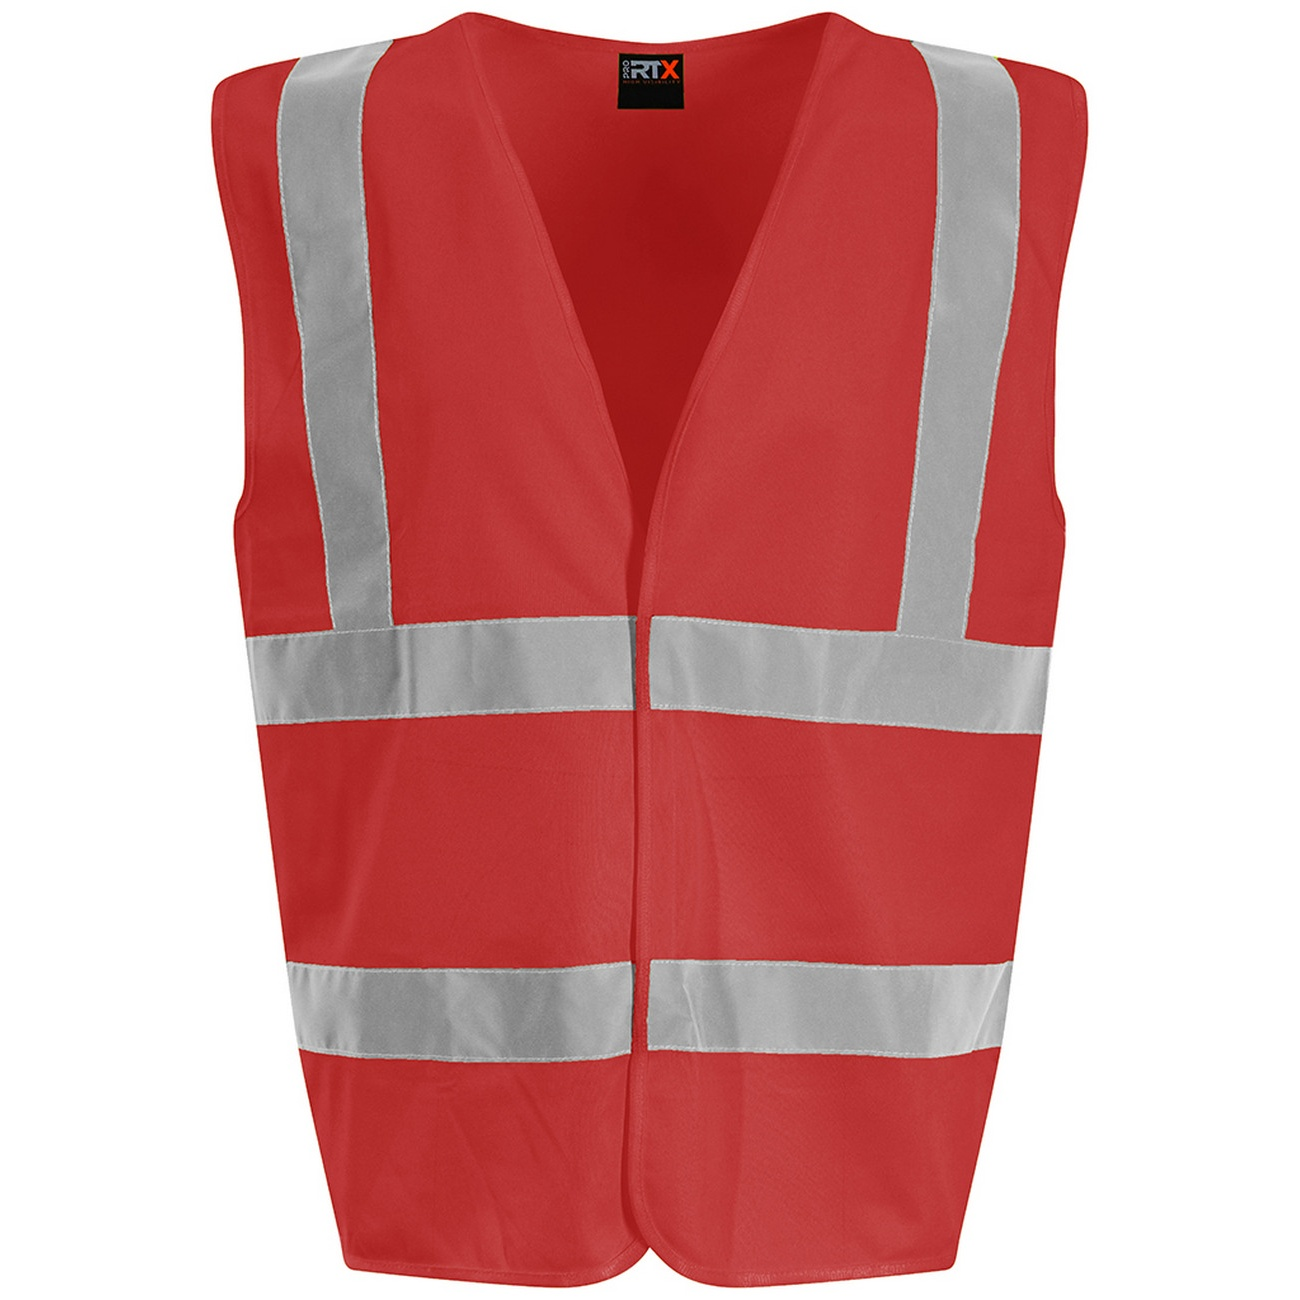 PRO RTX High Visibility Unisex Waistcoat (XL) (Red)